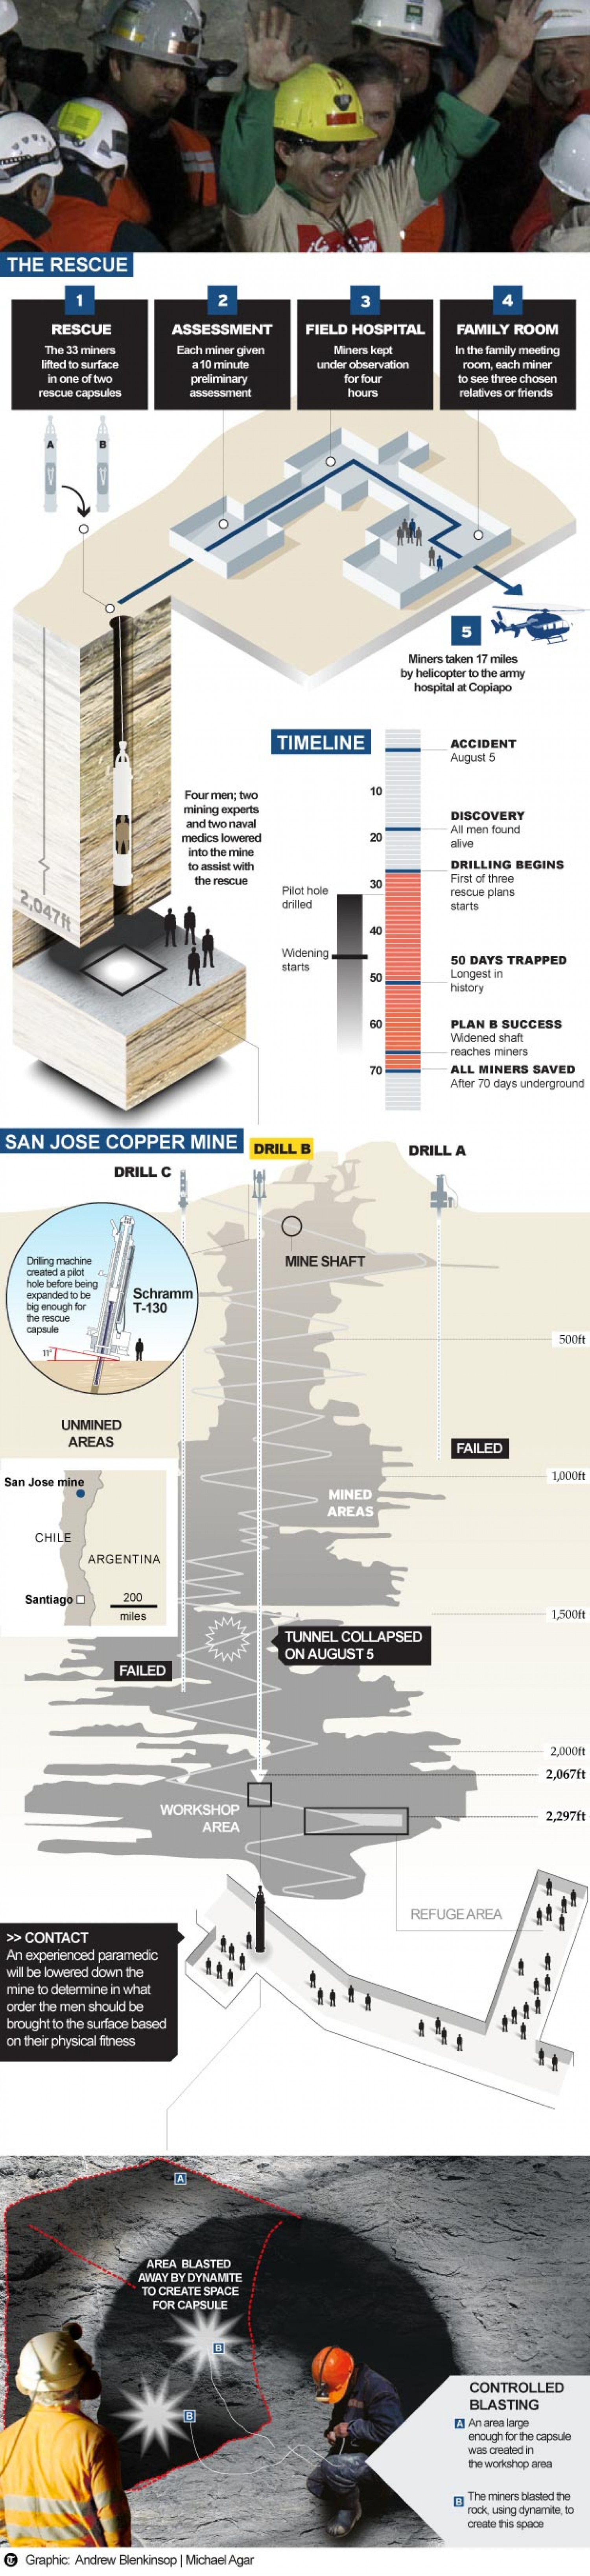 Chilean Miners Trapped in San Jose Mine Infographic